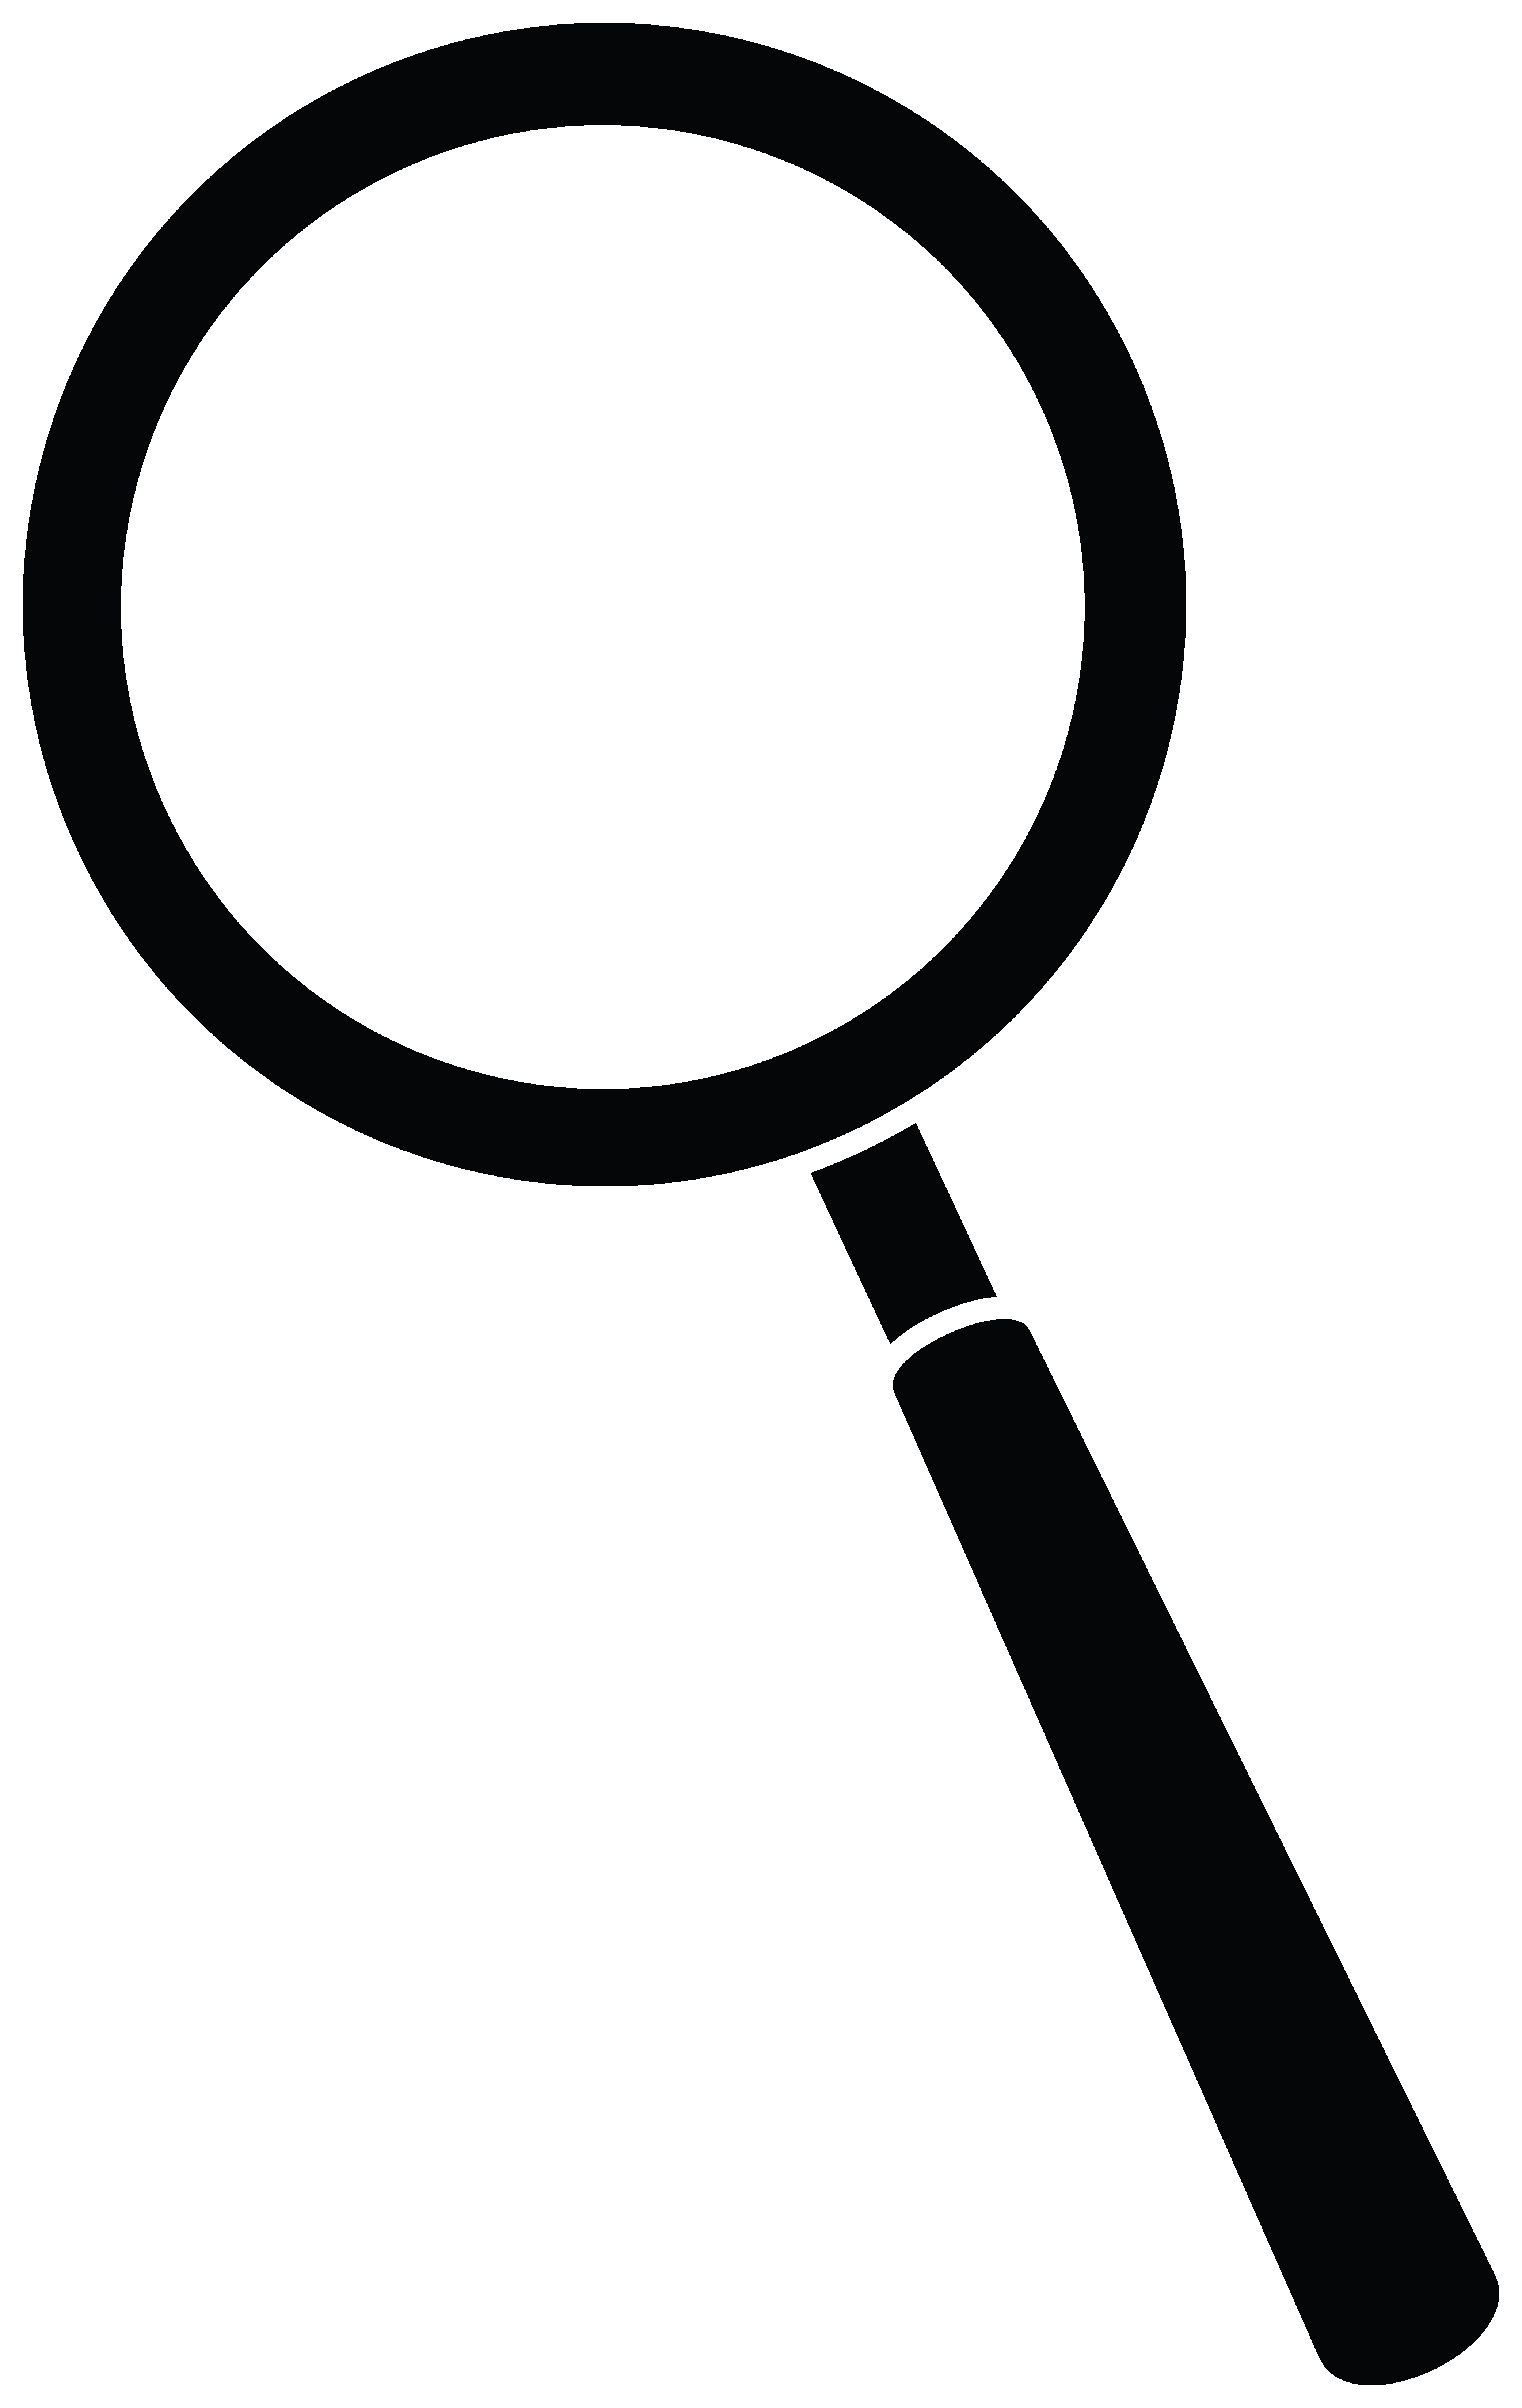 review clipart magnifying glass